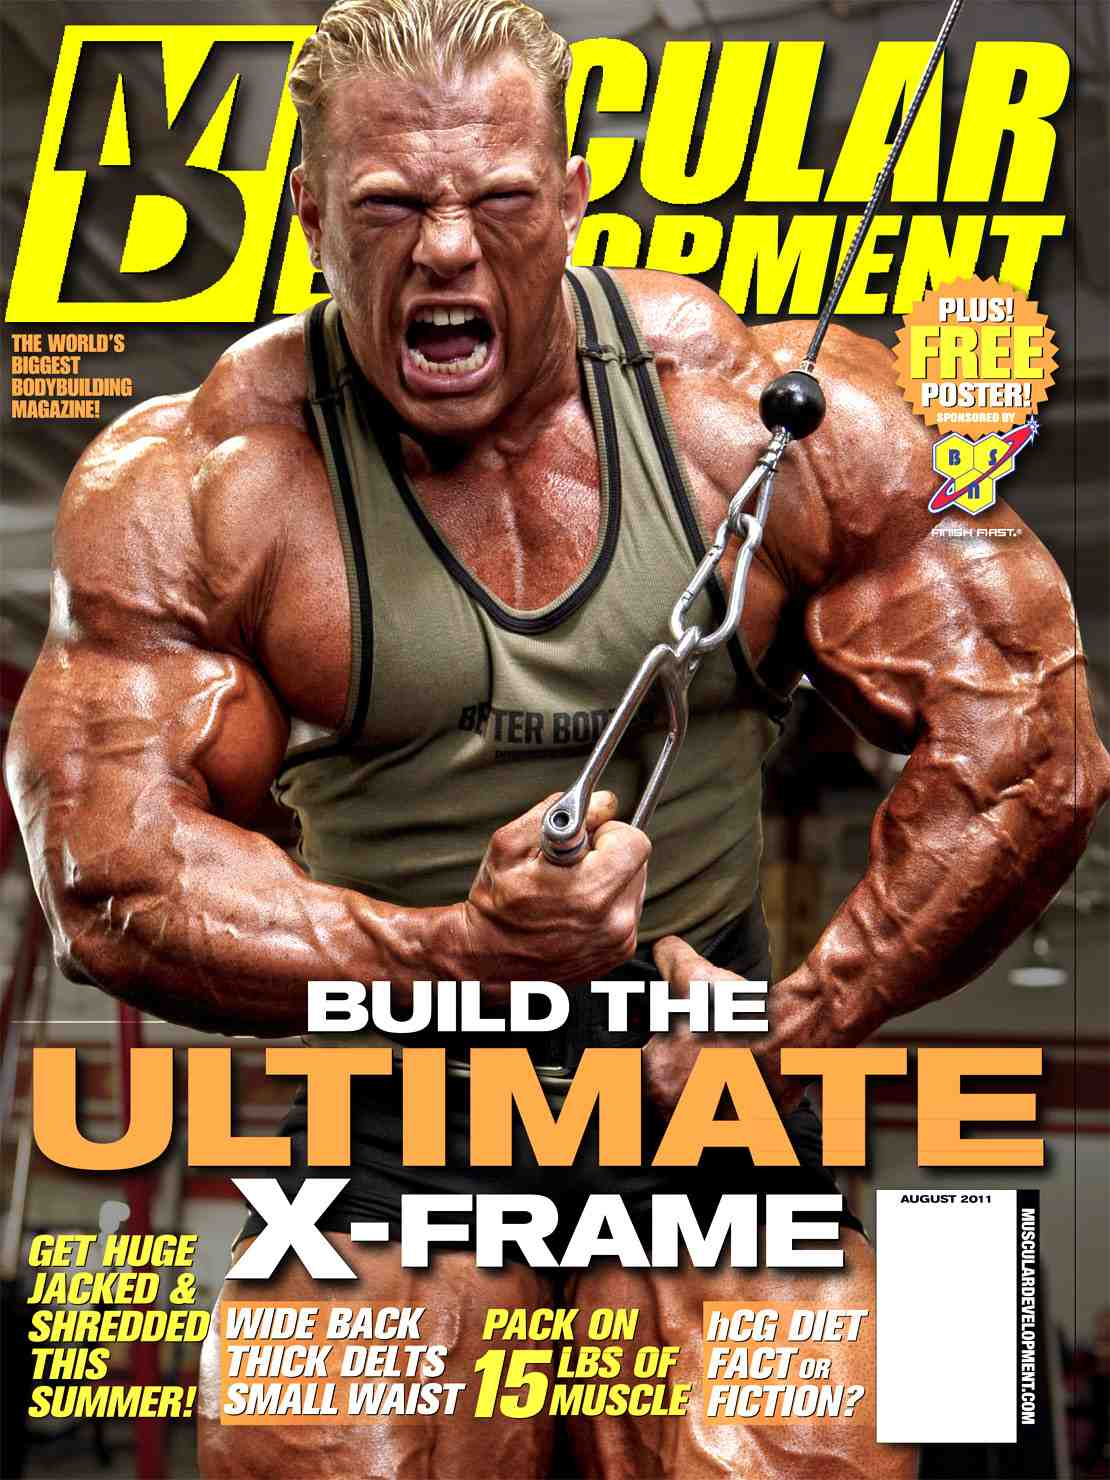 Next MD Cover: The Ultimate X-Frame